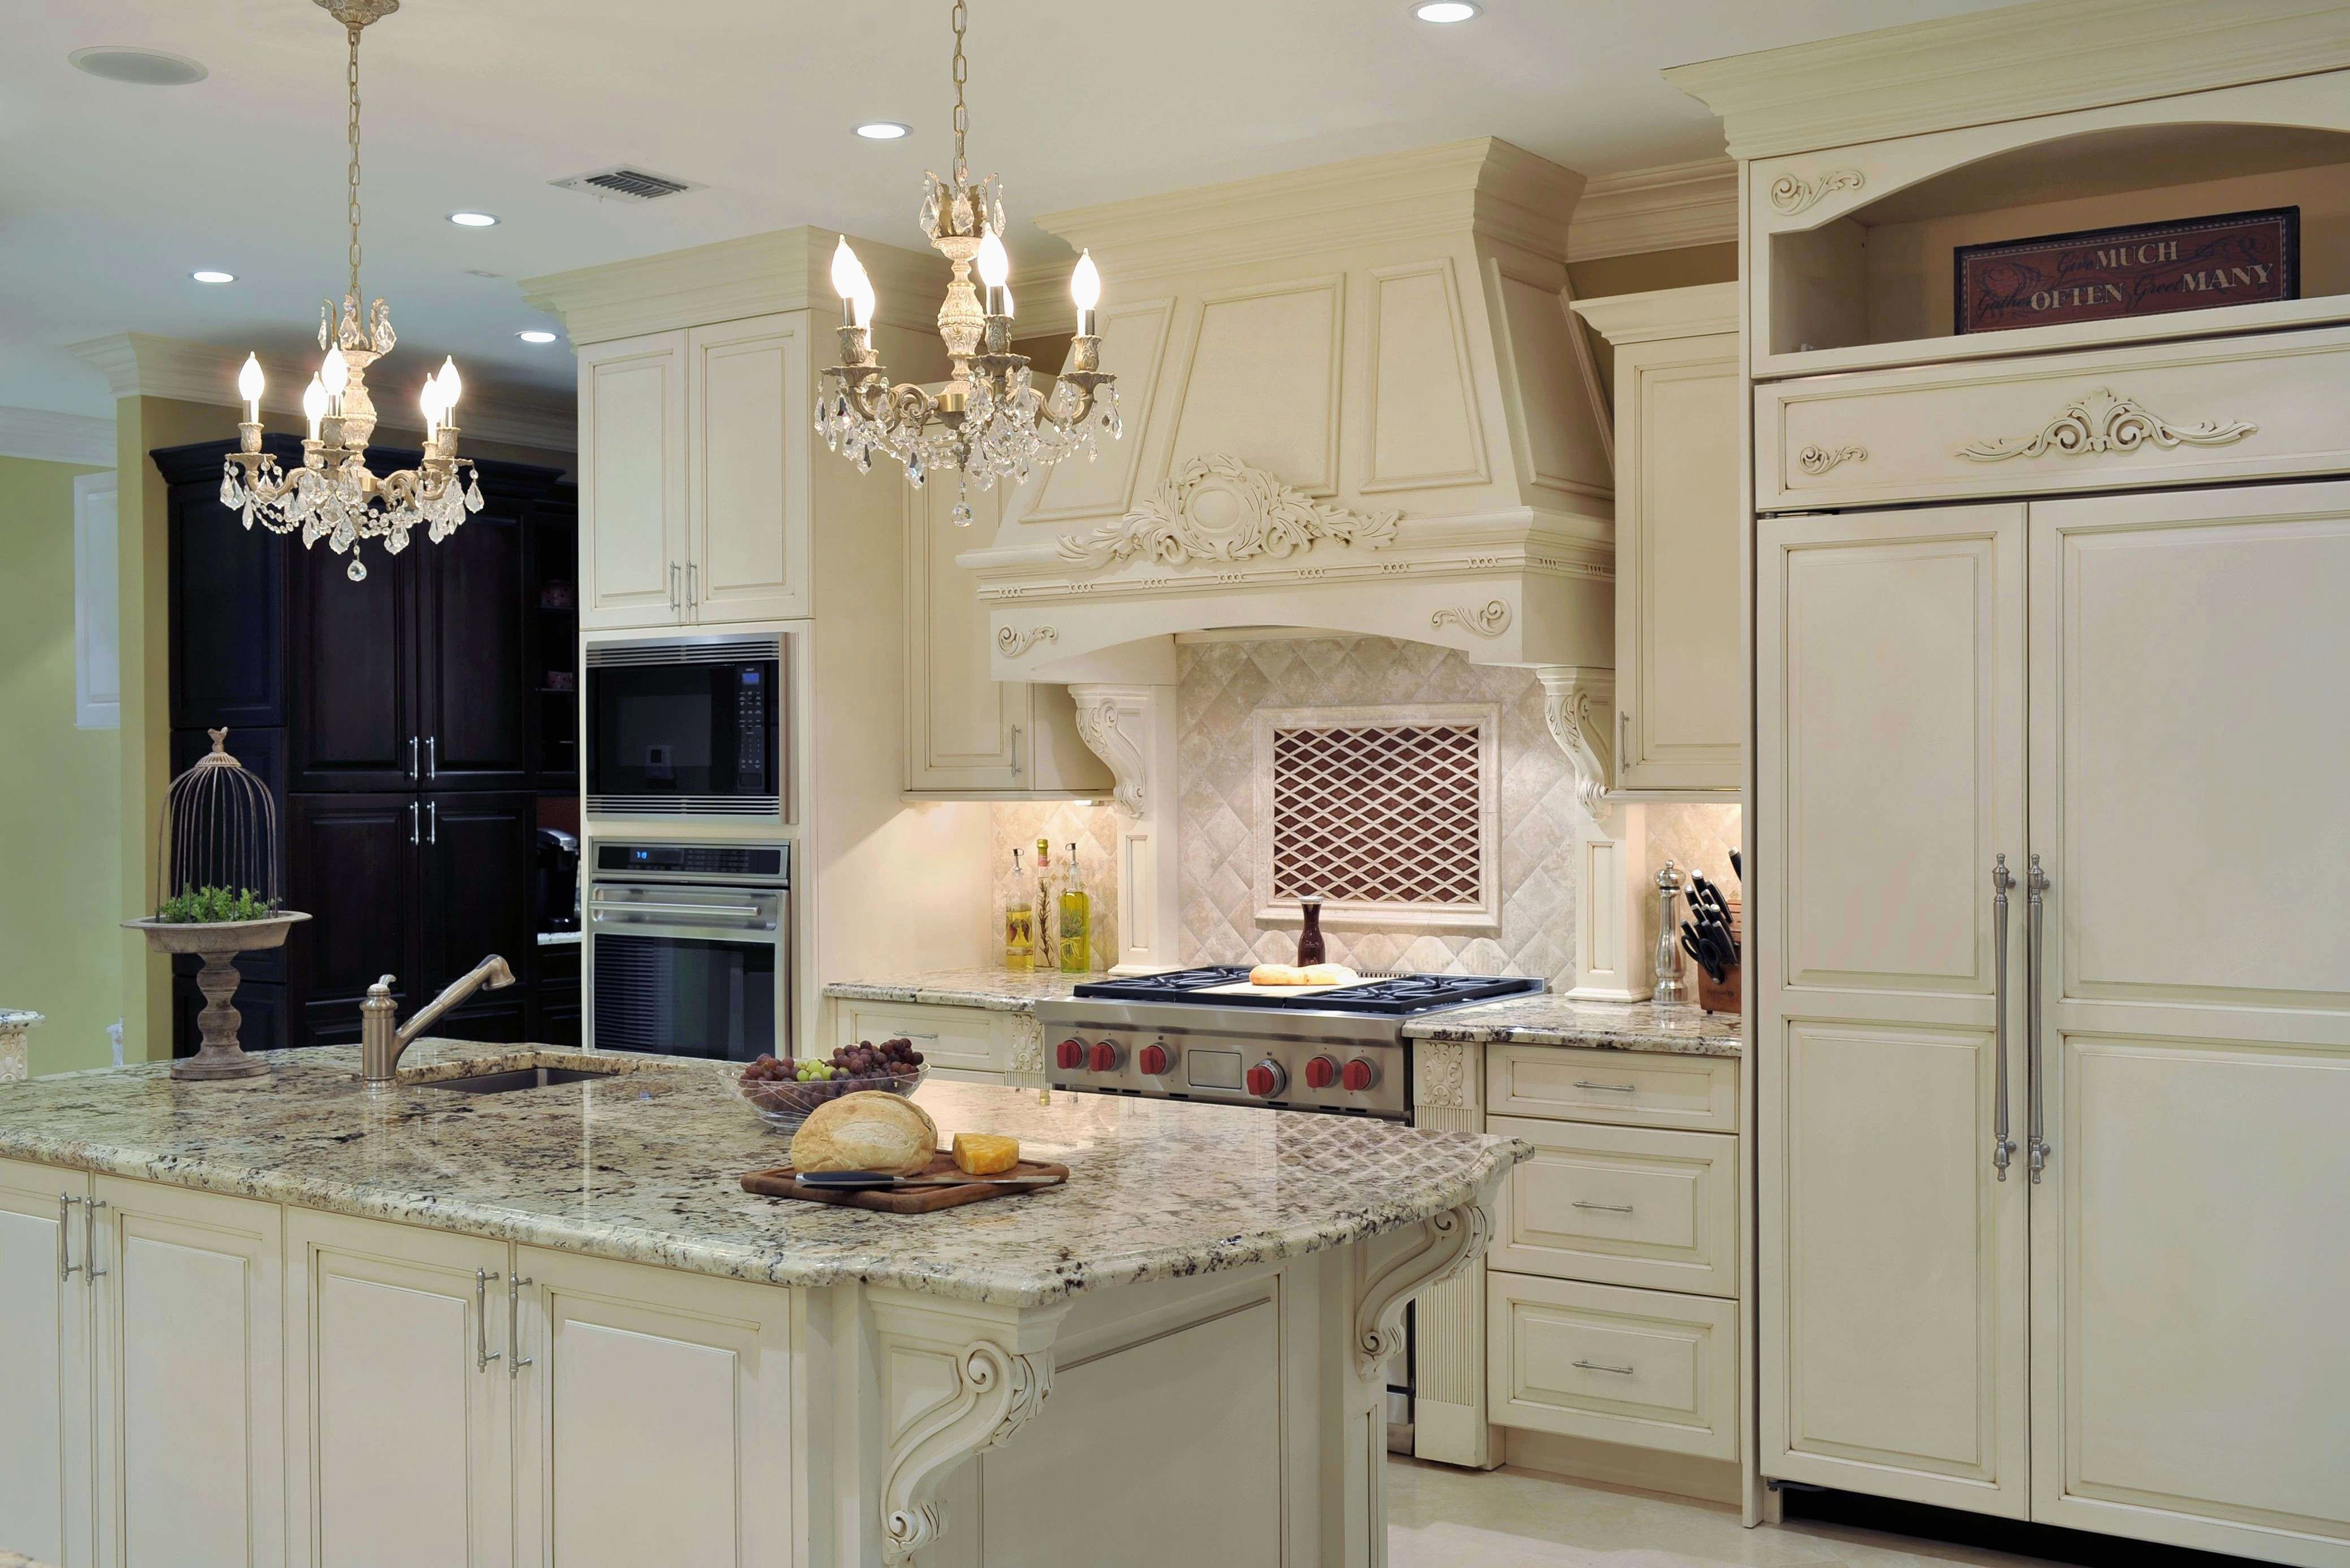 Light Gray Hardwood Floors Of 24 Pretty Dark Kitchen Cabinets with Light Wood Floors Stanky Groove In Gray Kitchen Backsplash Ideas New How Much is Kitchen Cabinet Installation Lovely Kitchen Cabinet 0d